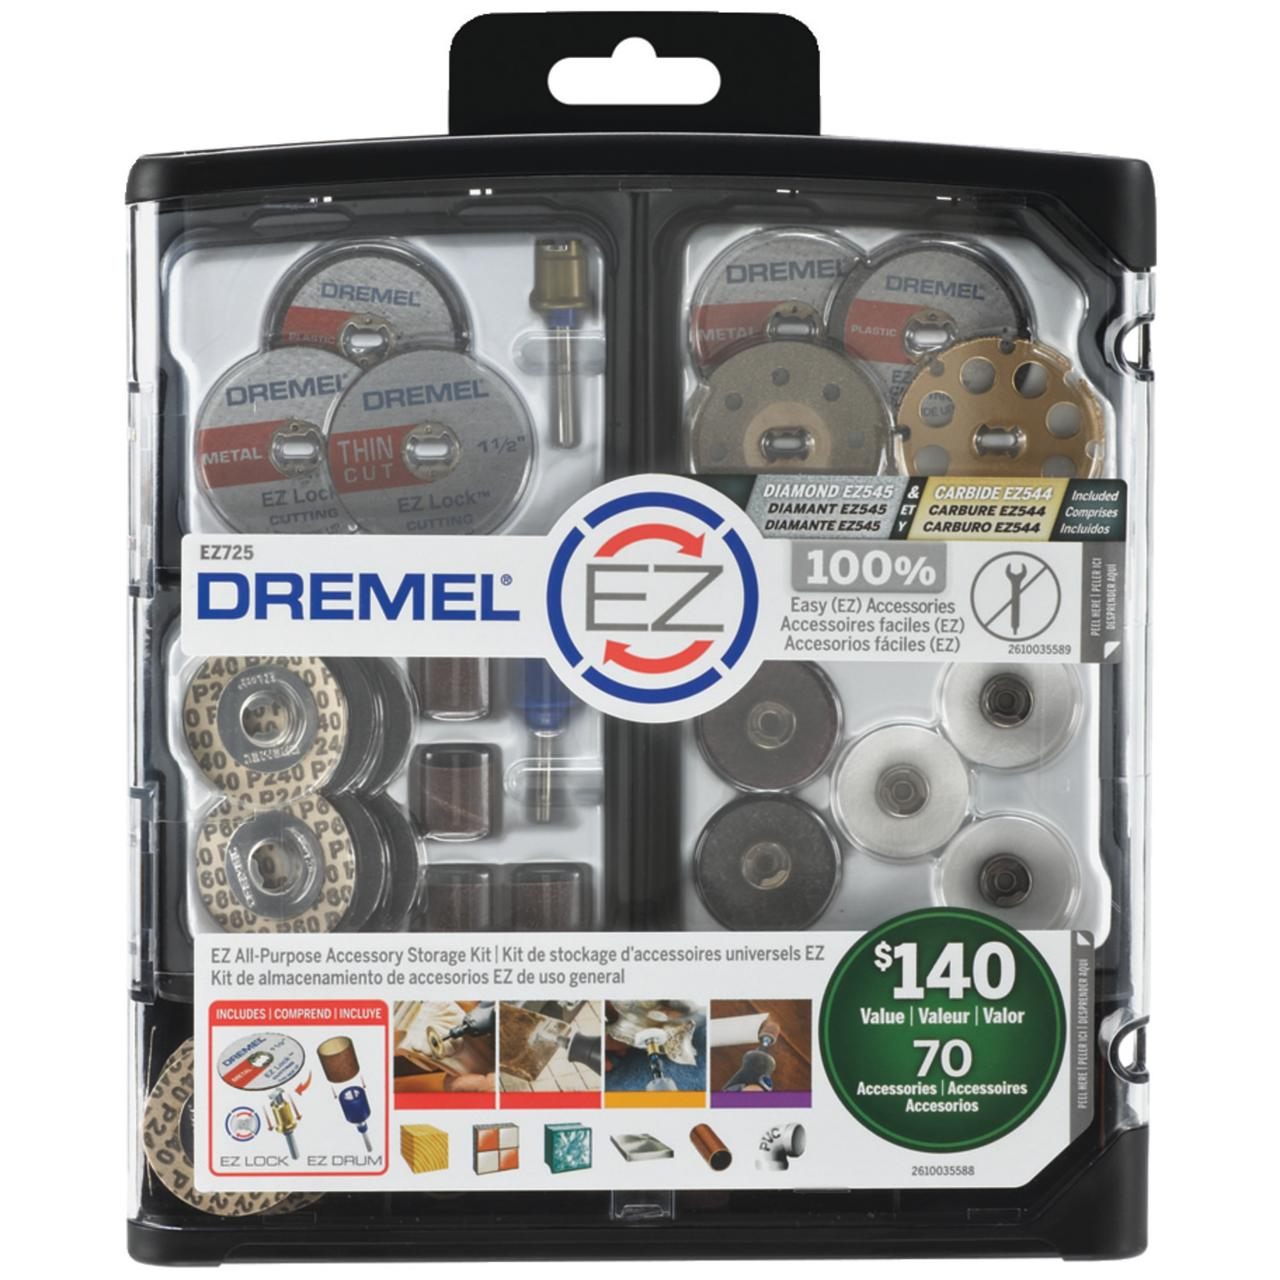 Dremel EZ725 70-Piece Ez All-purpose Accessory Storage Kit